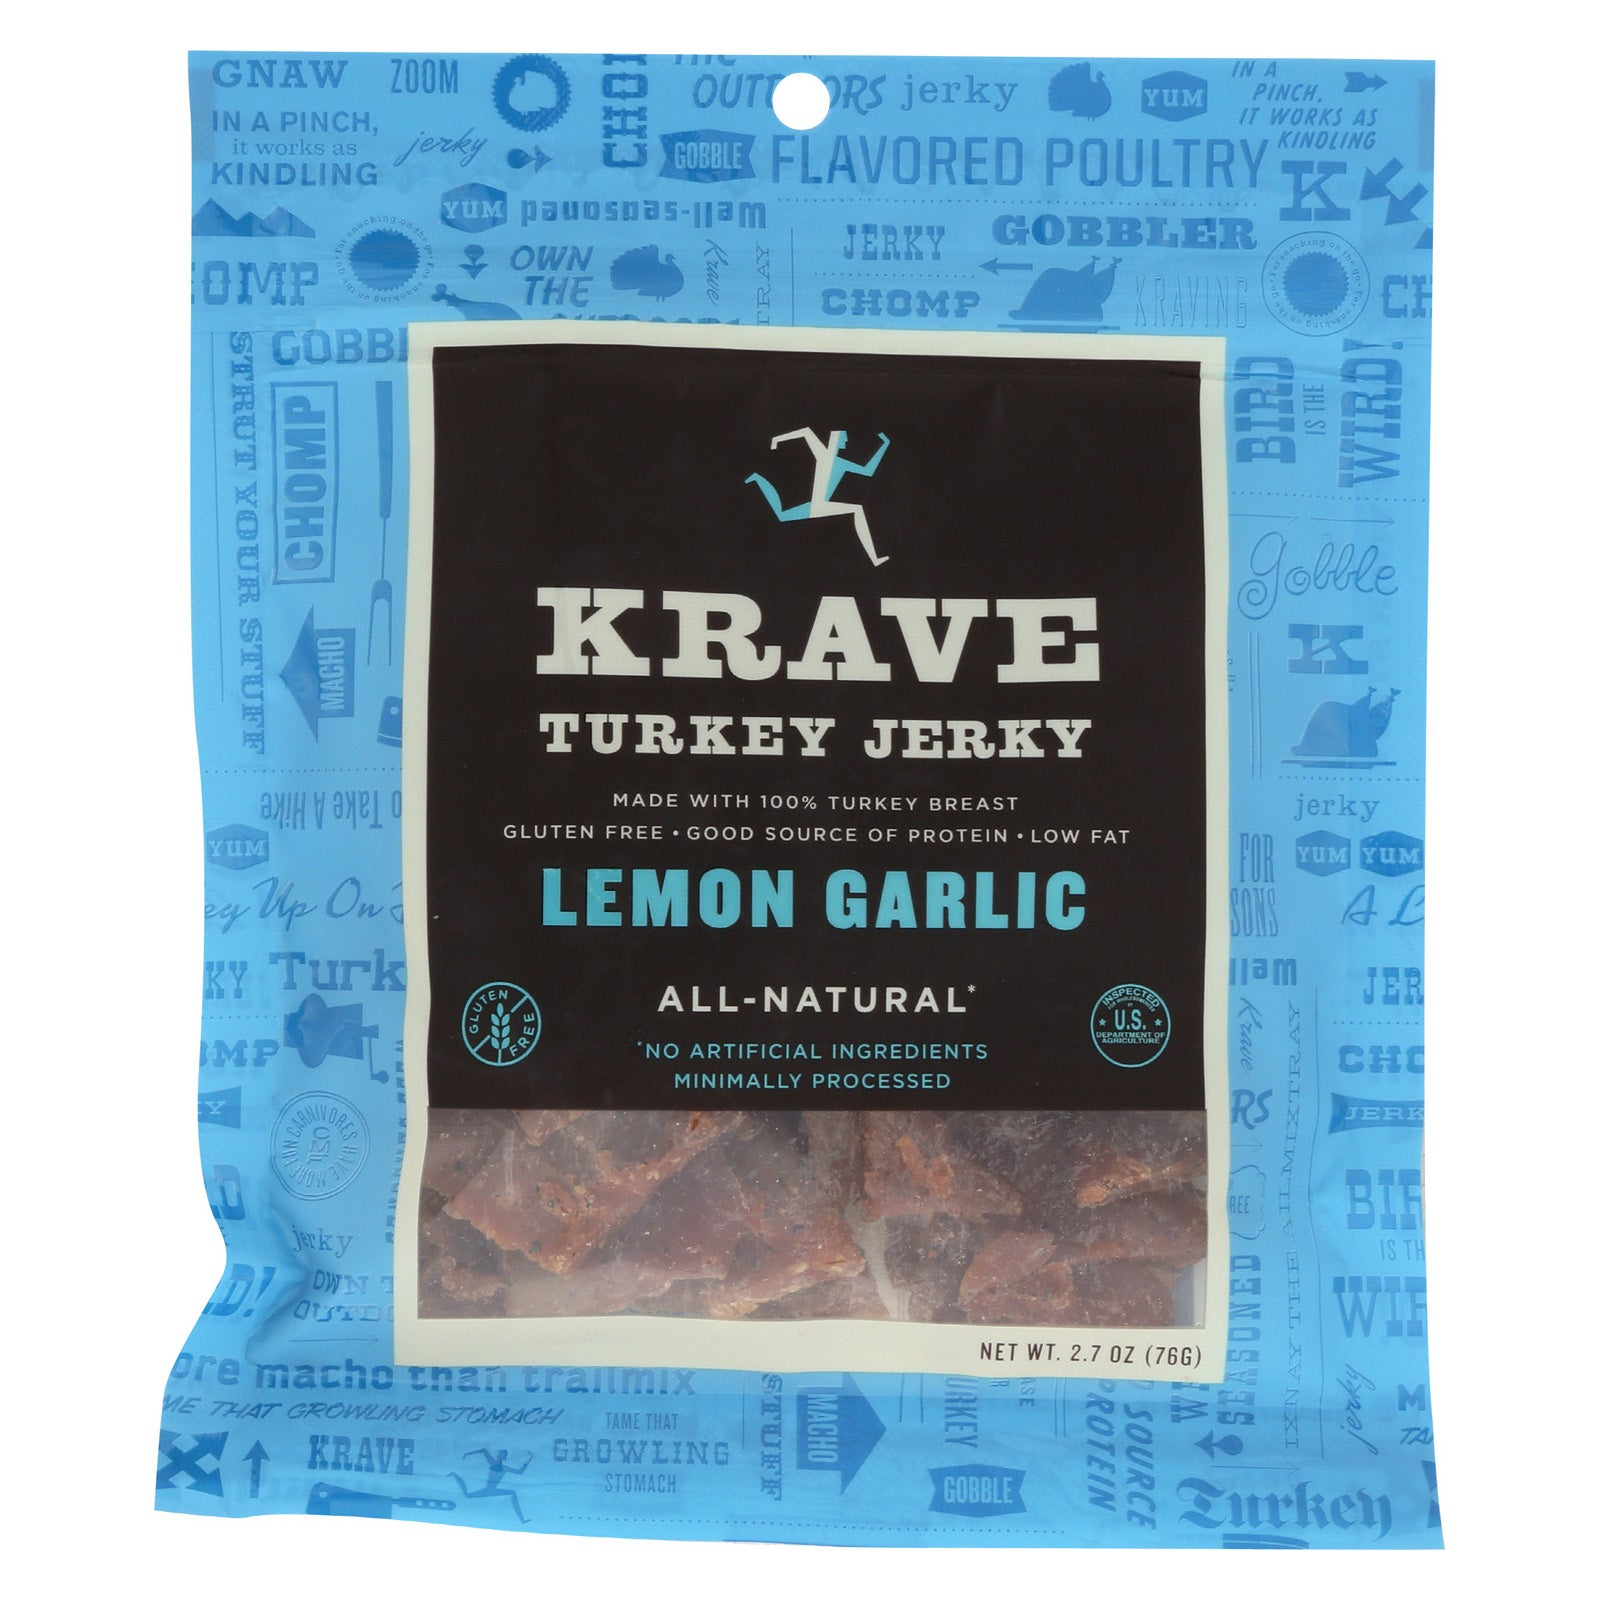 Krave Turkey Jerky - Lemon Garlic - Case of 8 - 2.7 oz